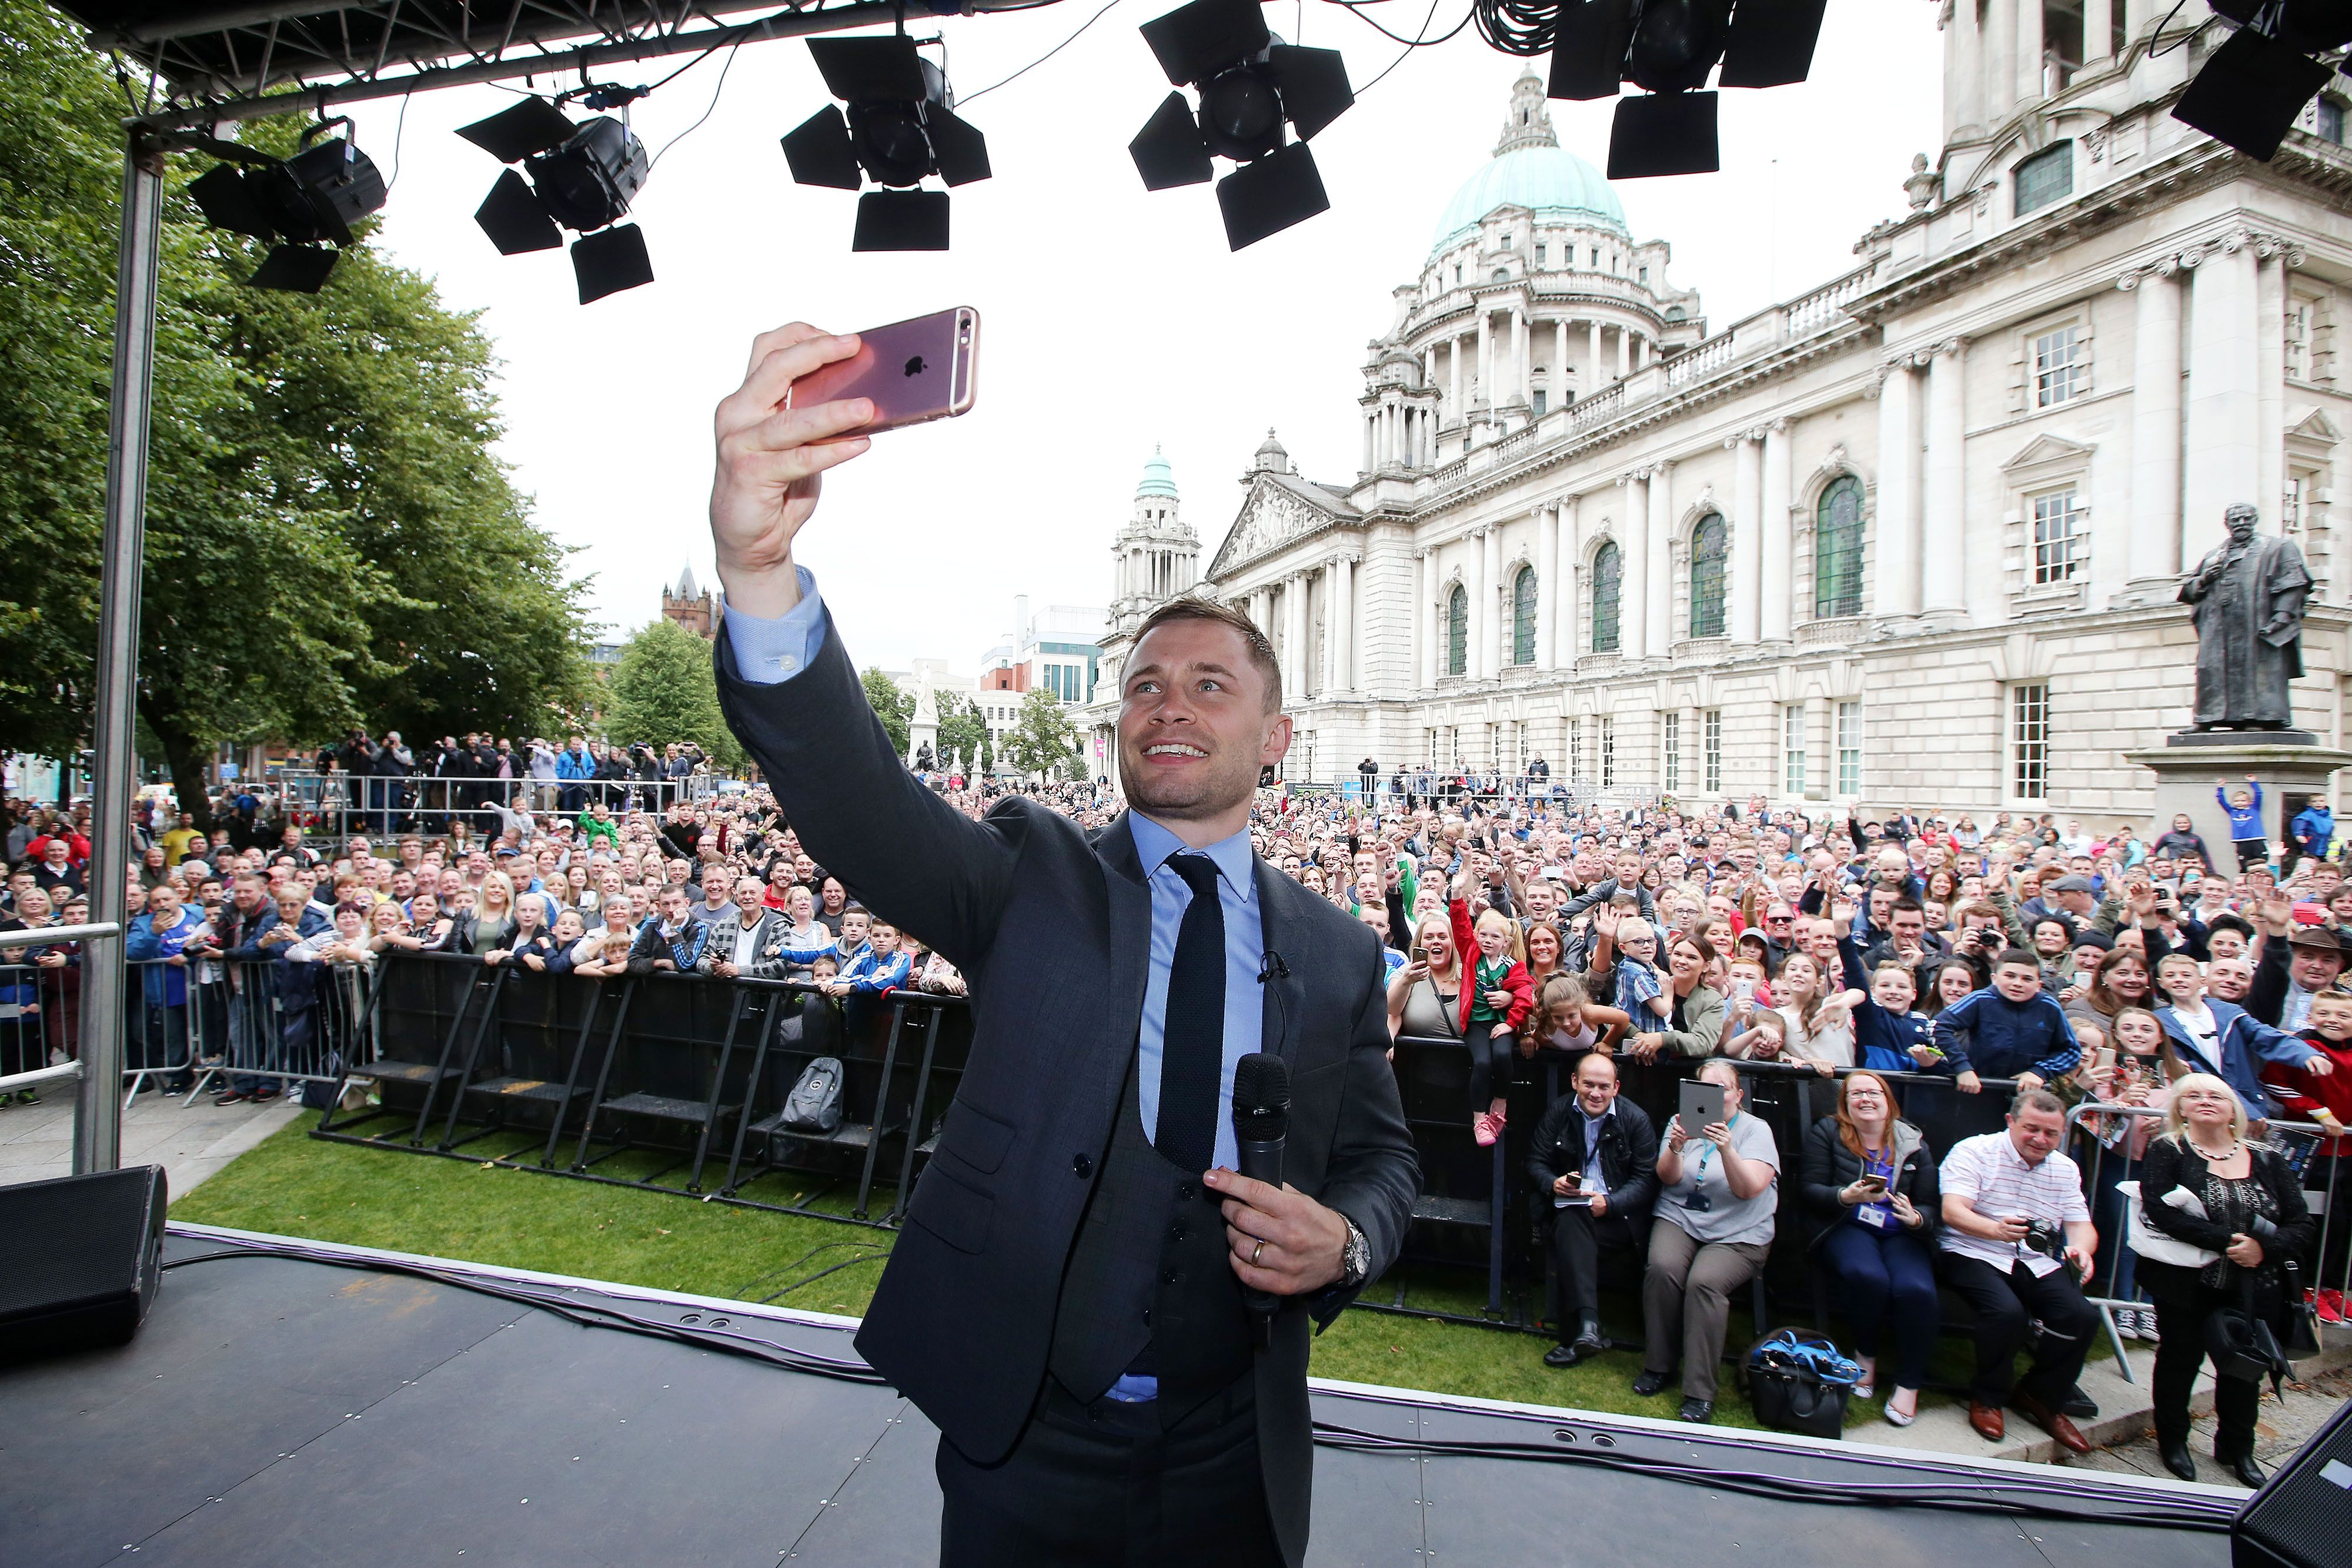 Carl Frampton takes a selfie with fans during a civic reception at Belfast\'s City Hall following his 2016 win over Leo Santa Cruz when he claimed the WBA featherweight title